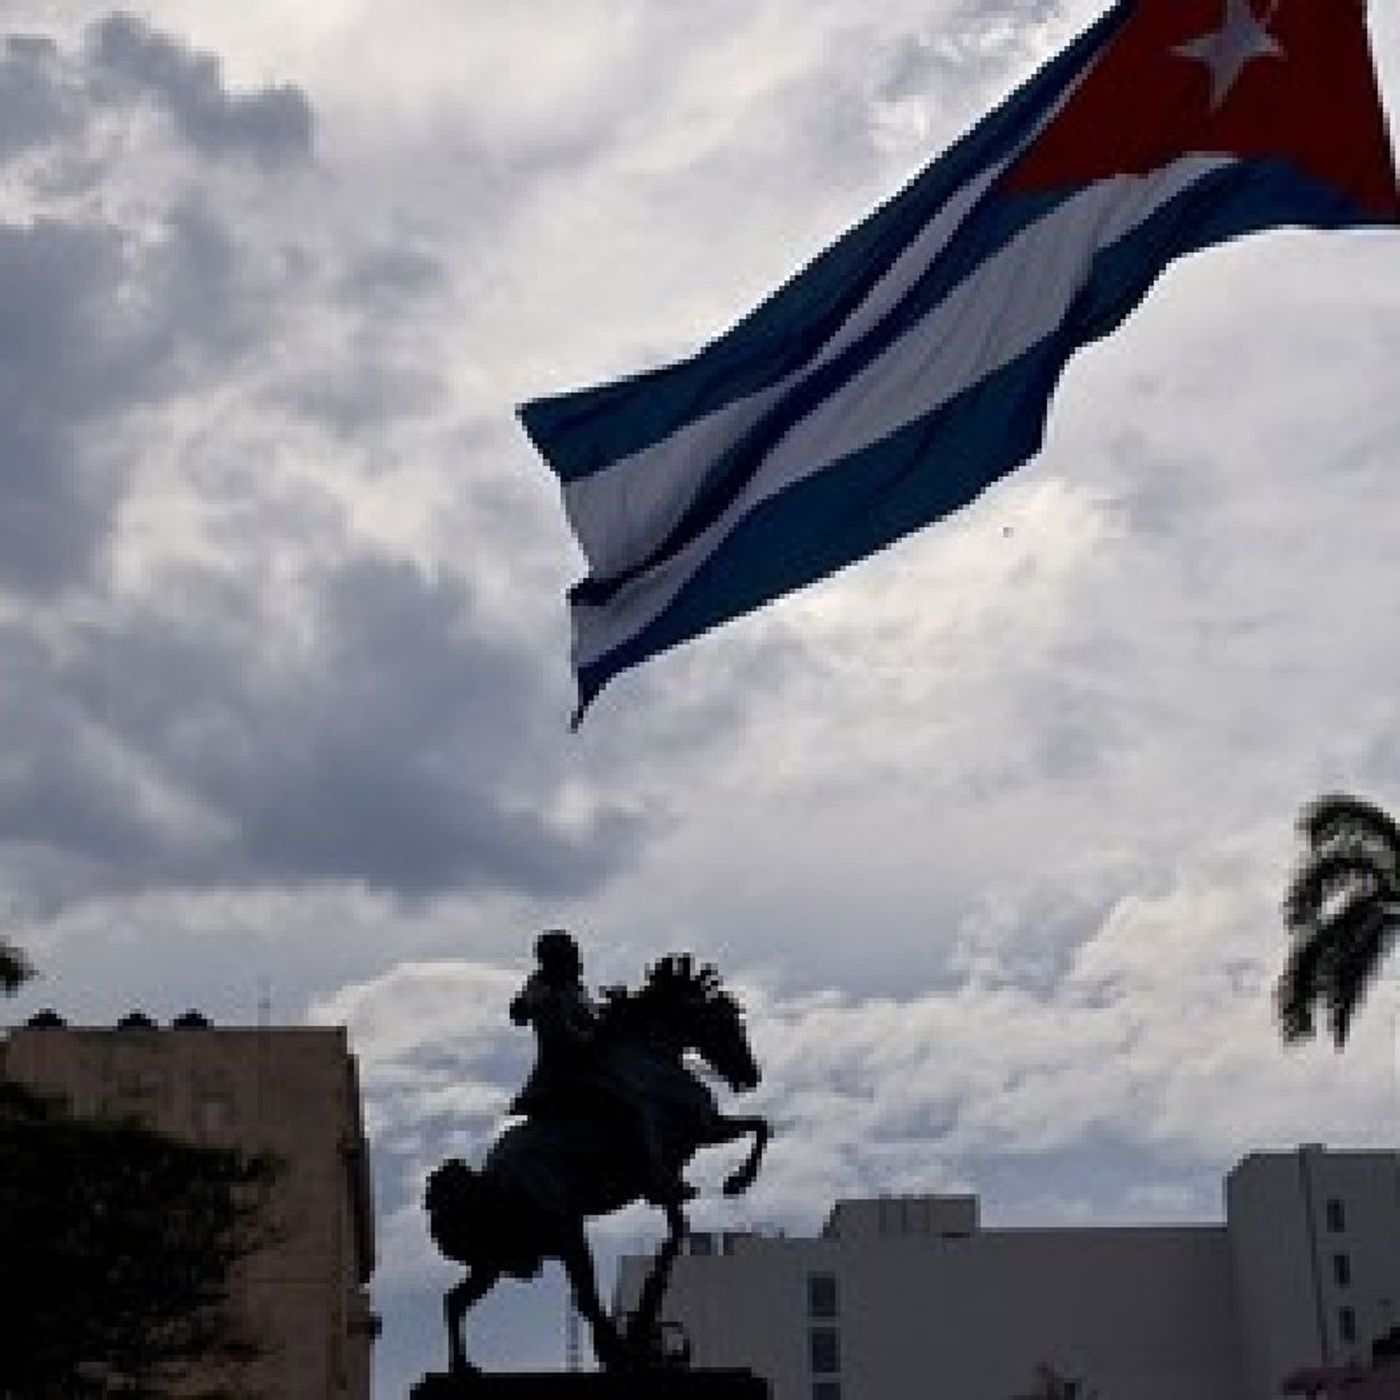 Episode 1329 - Twitter Wants You to Think the Major Protests in the Streets of Cuba Right Now Are Over 'Impact of COVID-19'